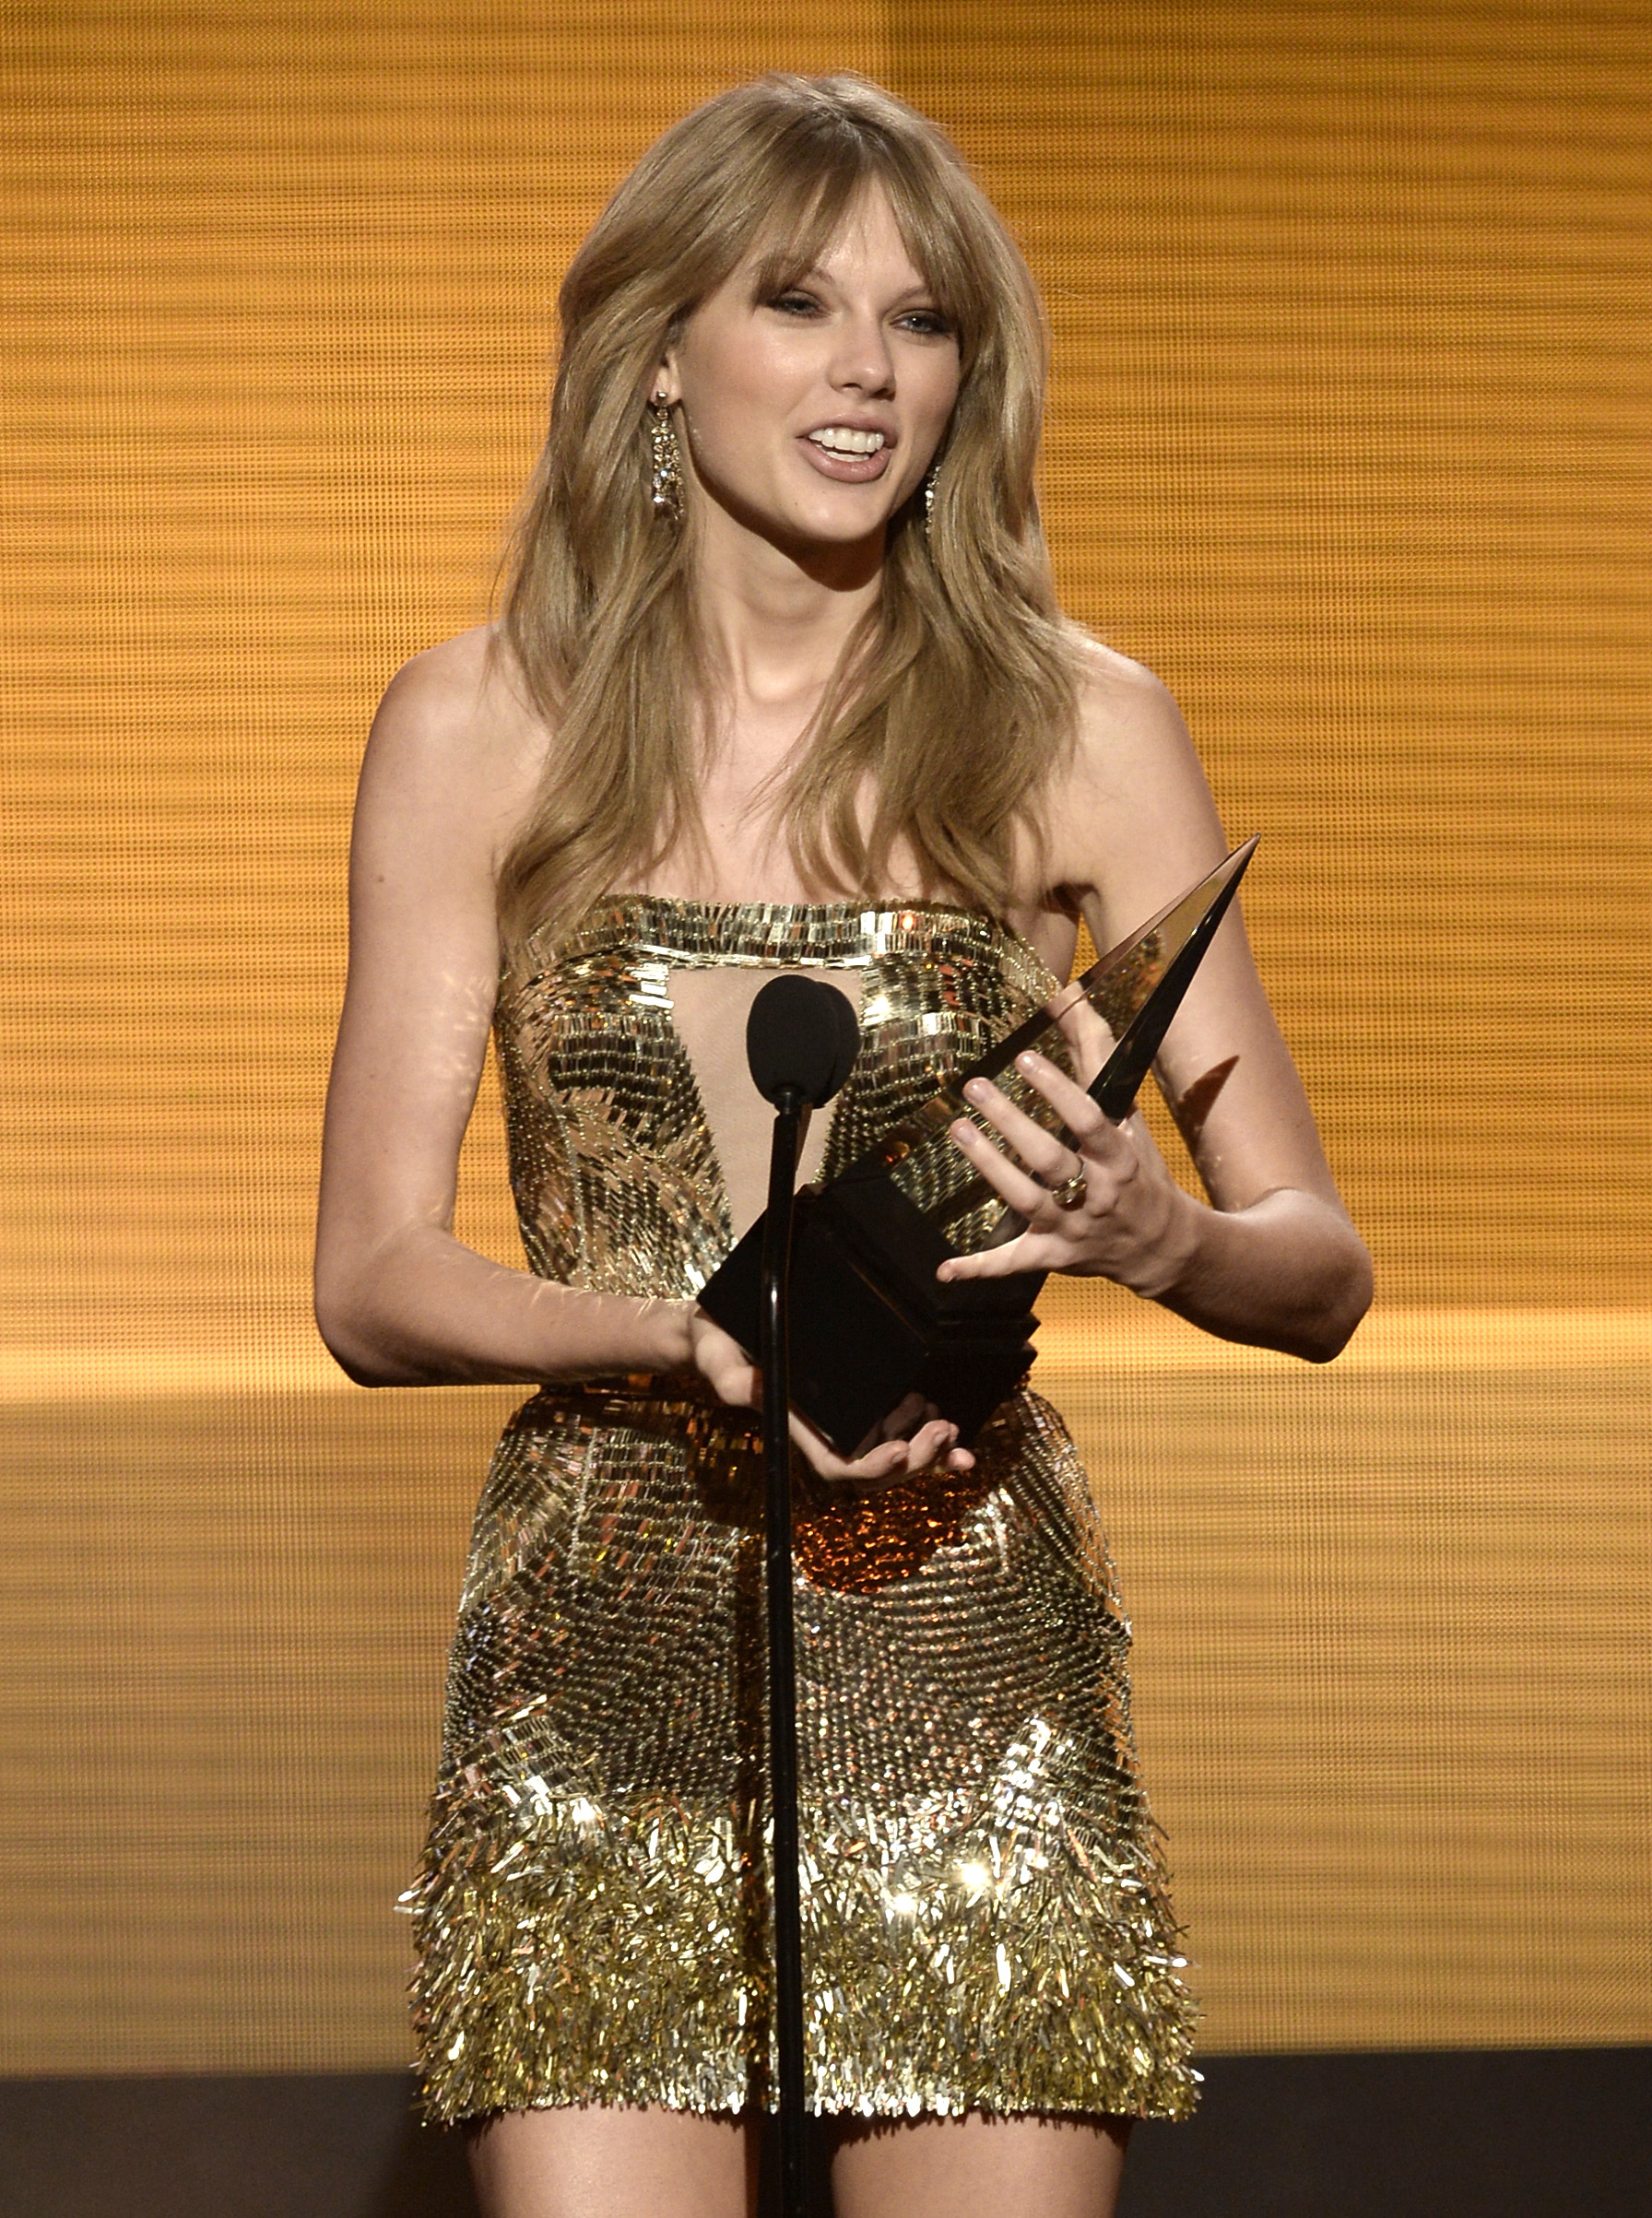 http://taylorpictures.net/albums/app/2013/americanmusicawards/029.jpg